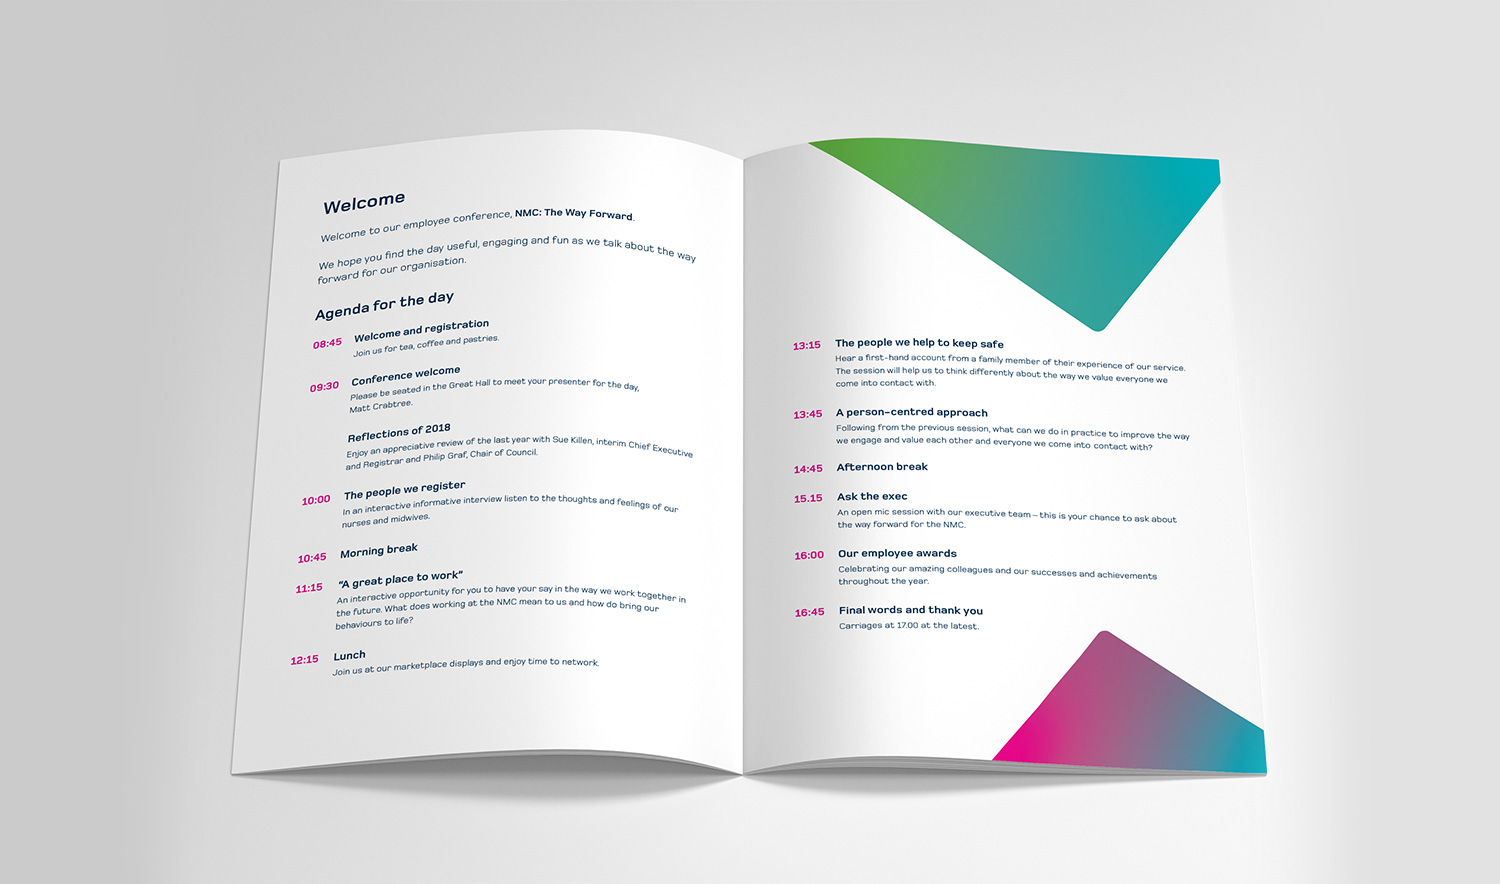 NMC Staff Conference contents page